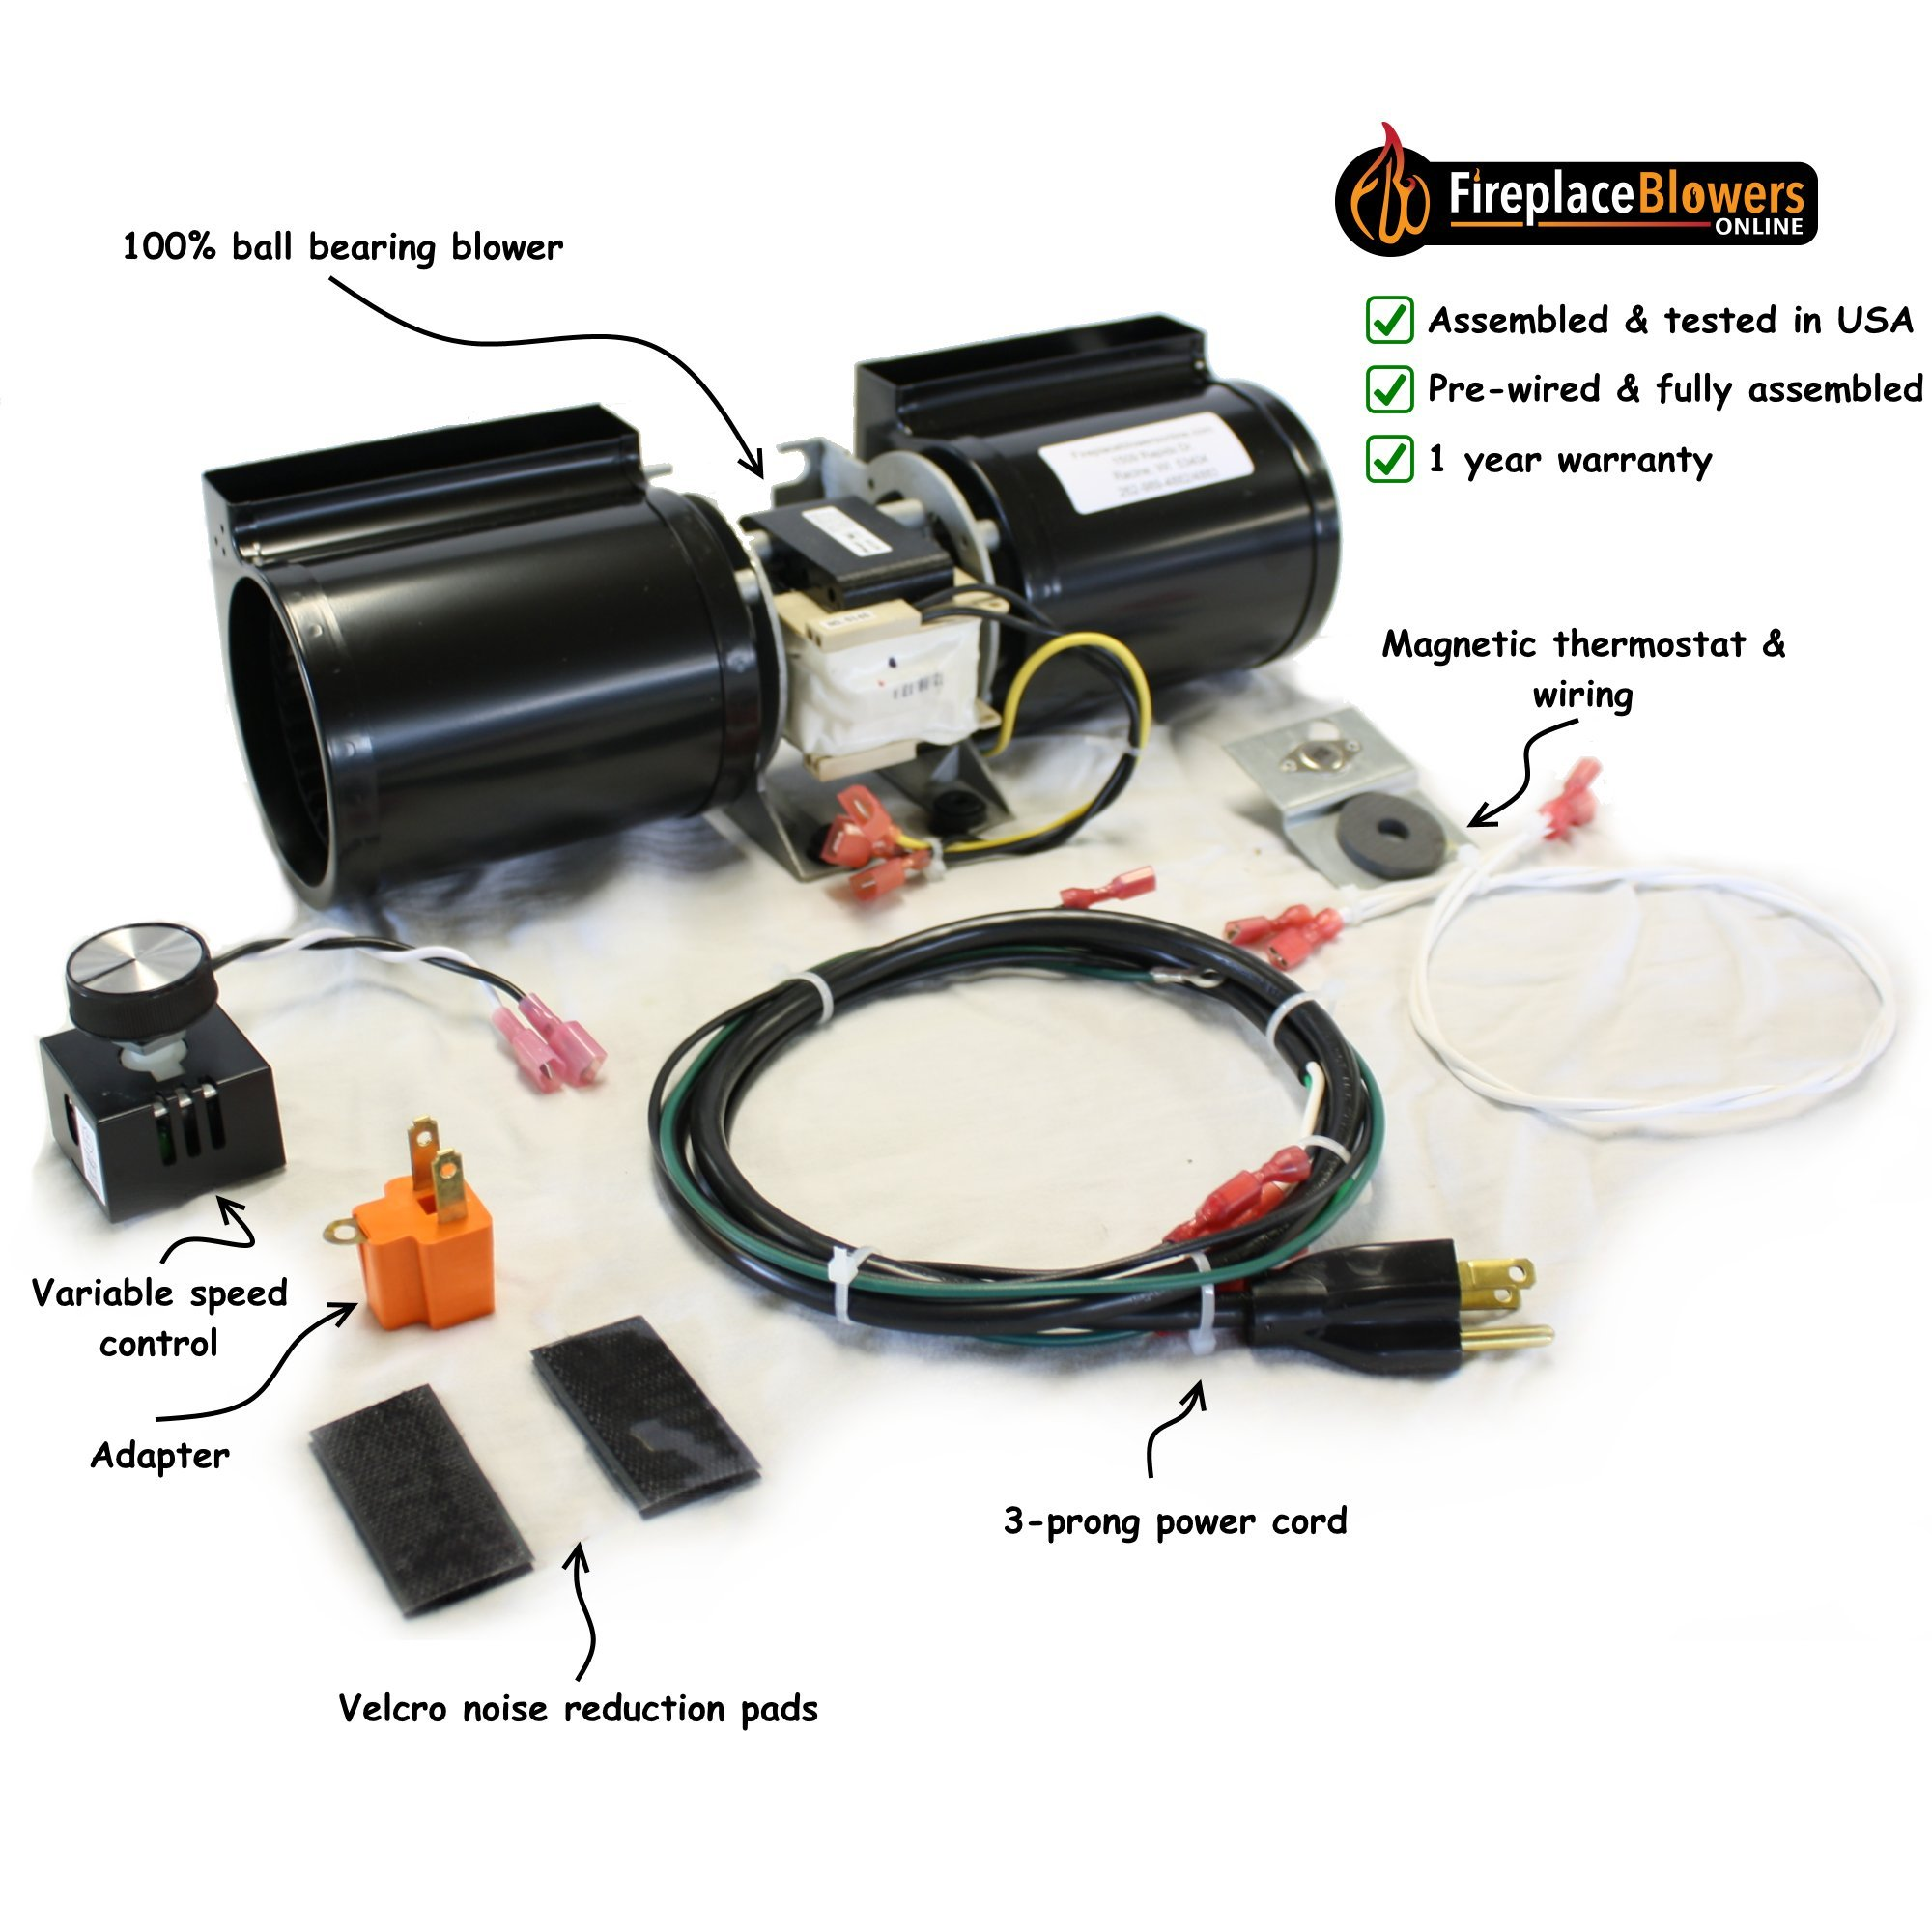 GFK-160 Fireplace Blower Kit for Heat N Glo, Hearth and Home, Quadra Fire by FireplaceBlowersOnline